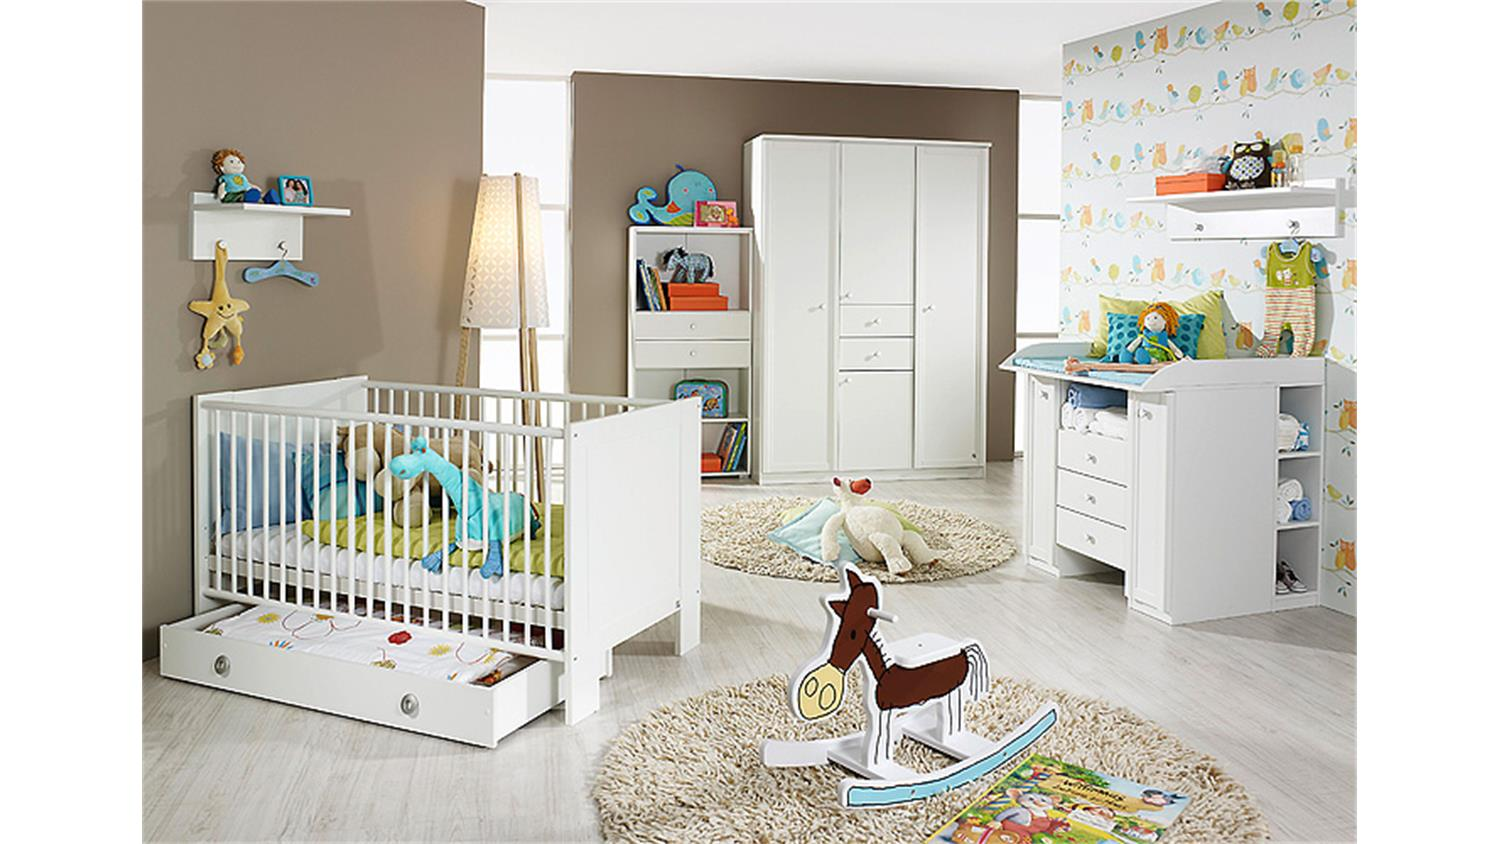 babyzimmer komplett set babyzimmer kinderzimmer komplett. Black Bedroom Furniture Sets. Home Design Ideas